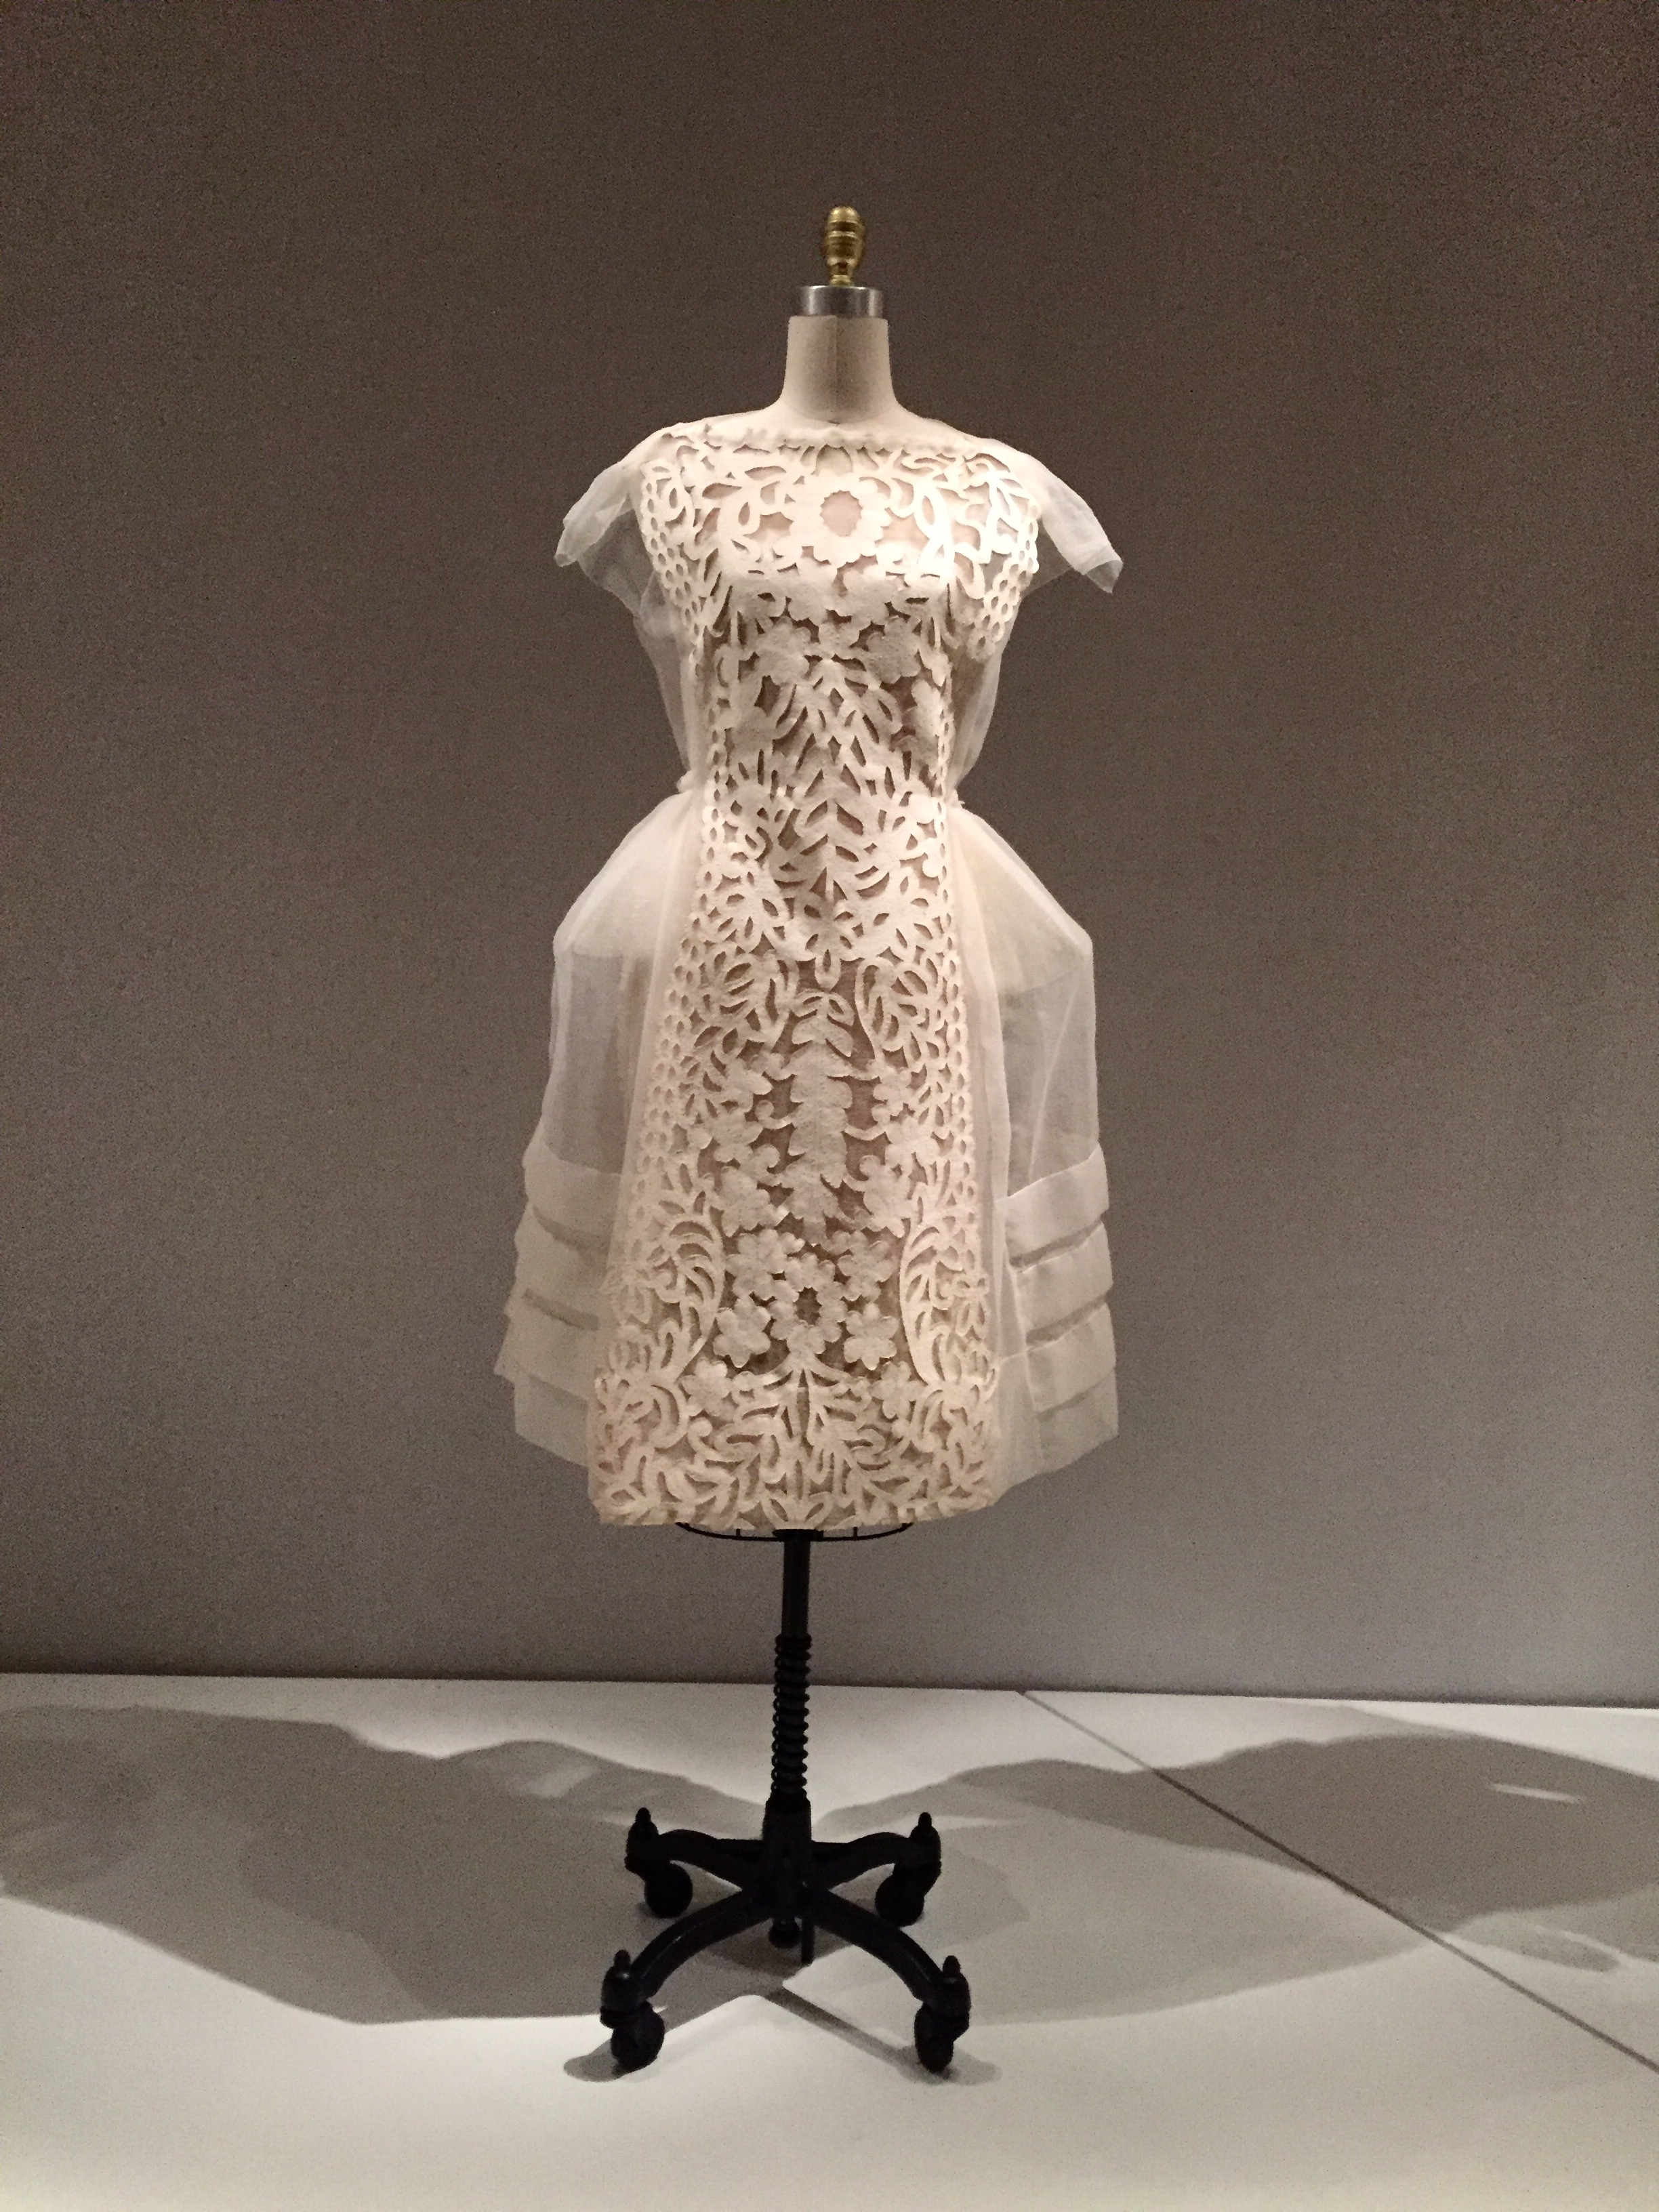 ROSE & IVY Journal A Site to be Seen   Machina x Manus: Fashion in an Age of Technology